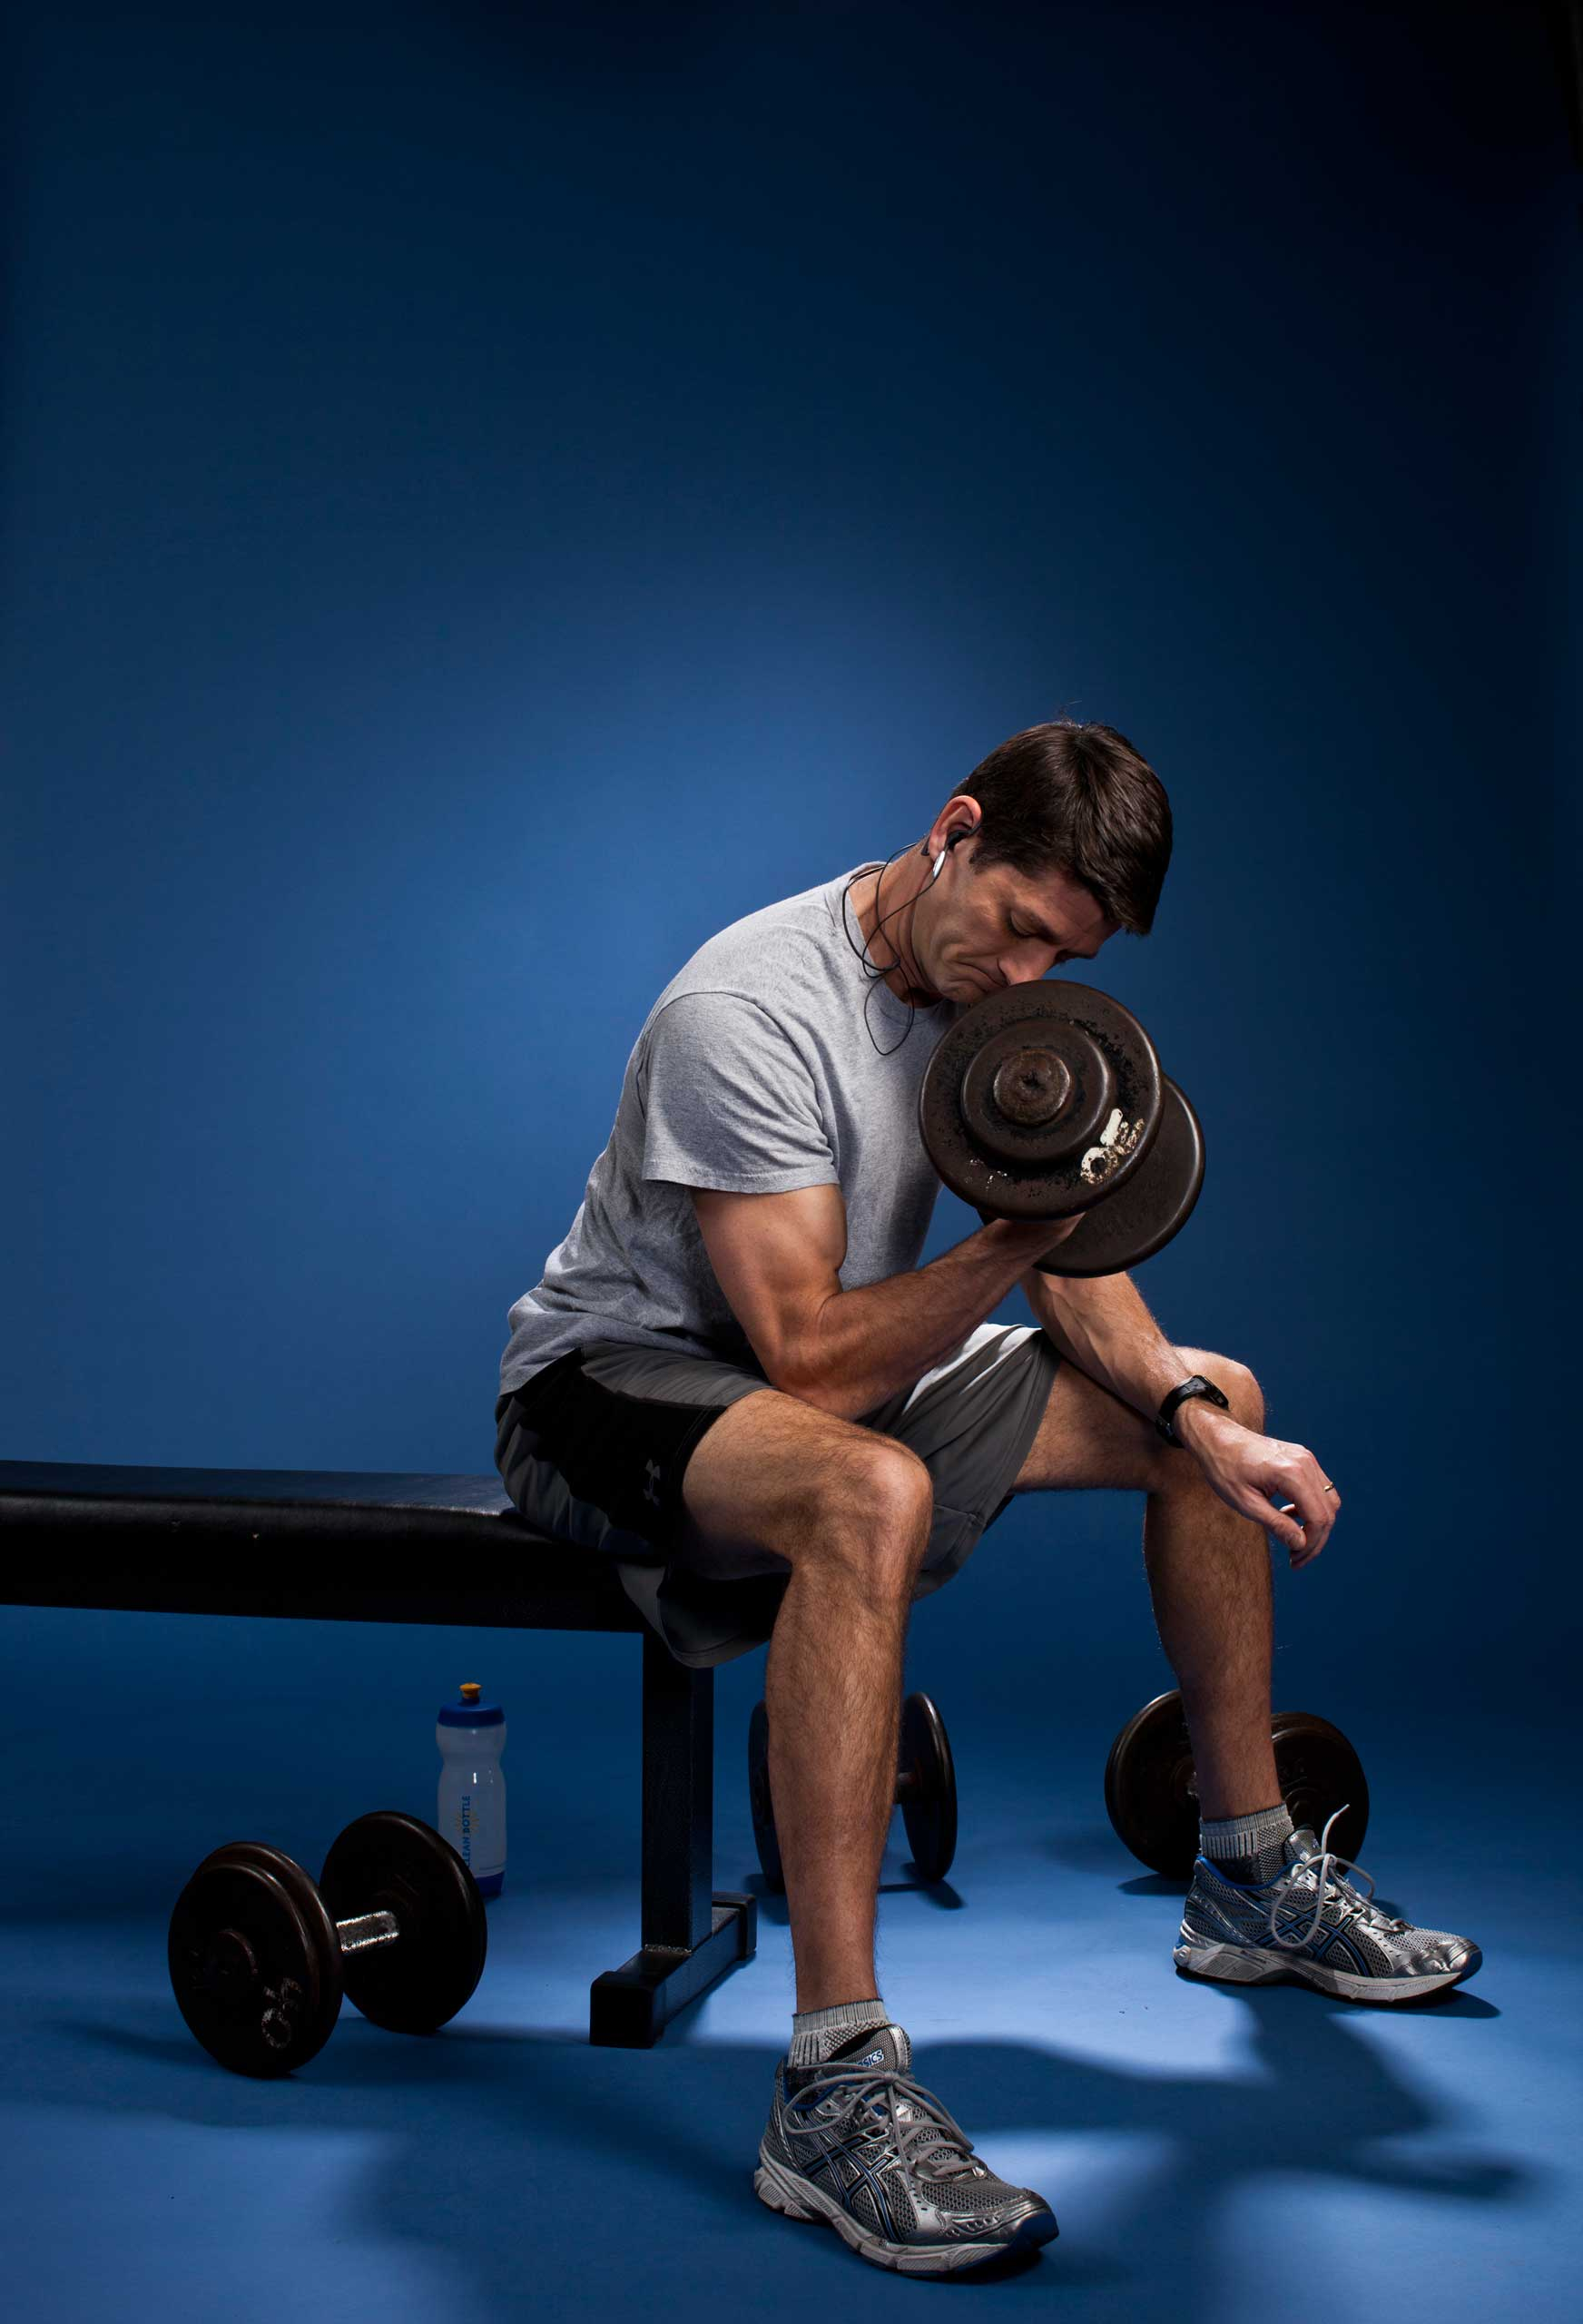 The P90X method involves changing routines often so muscles don't get accustomed to any one exercise